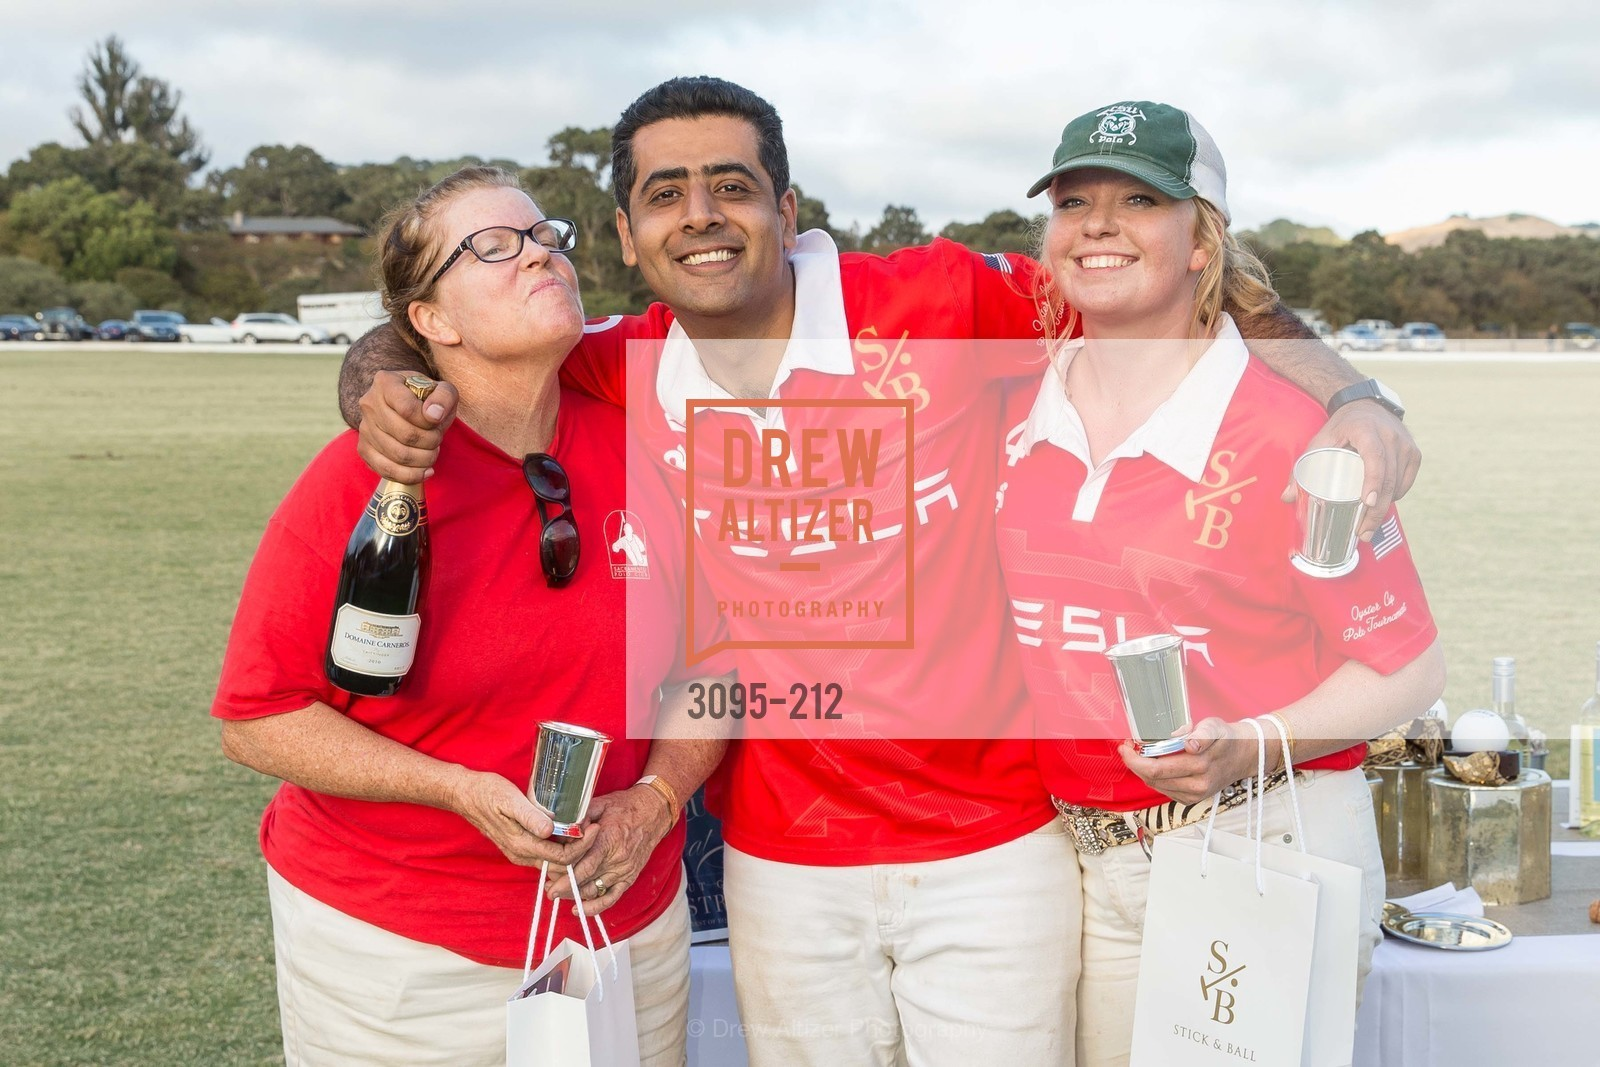 Bonnie Magill, Hassan Khan, Raeann Magill, Photo #3095-212